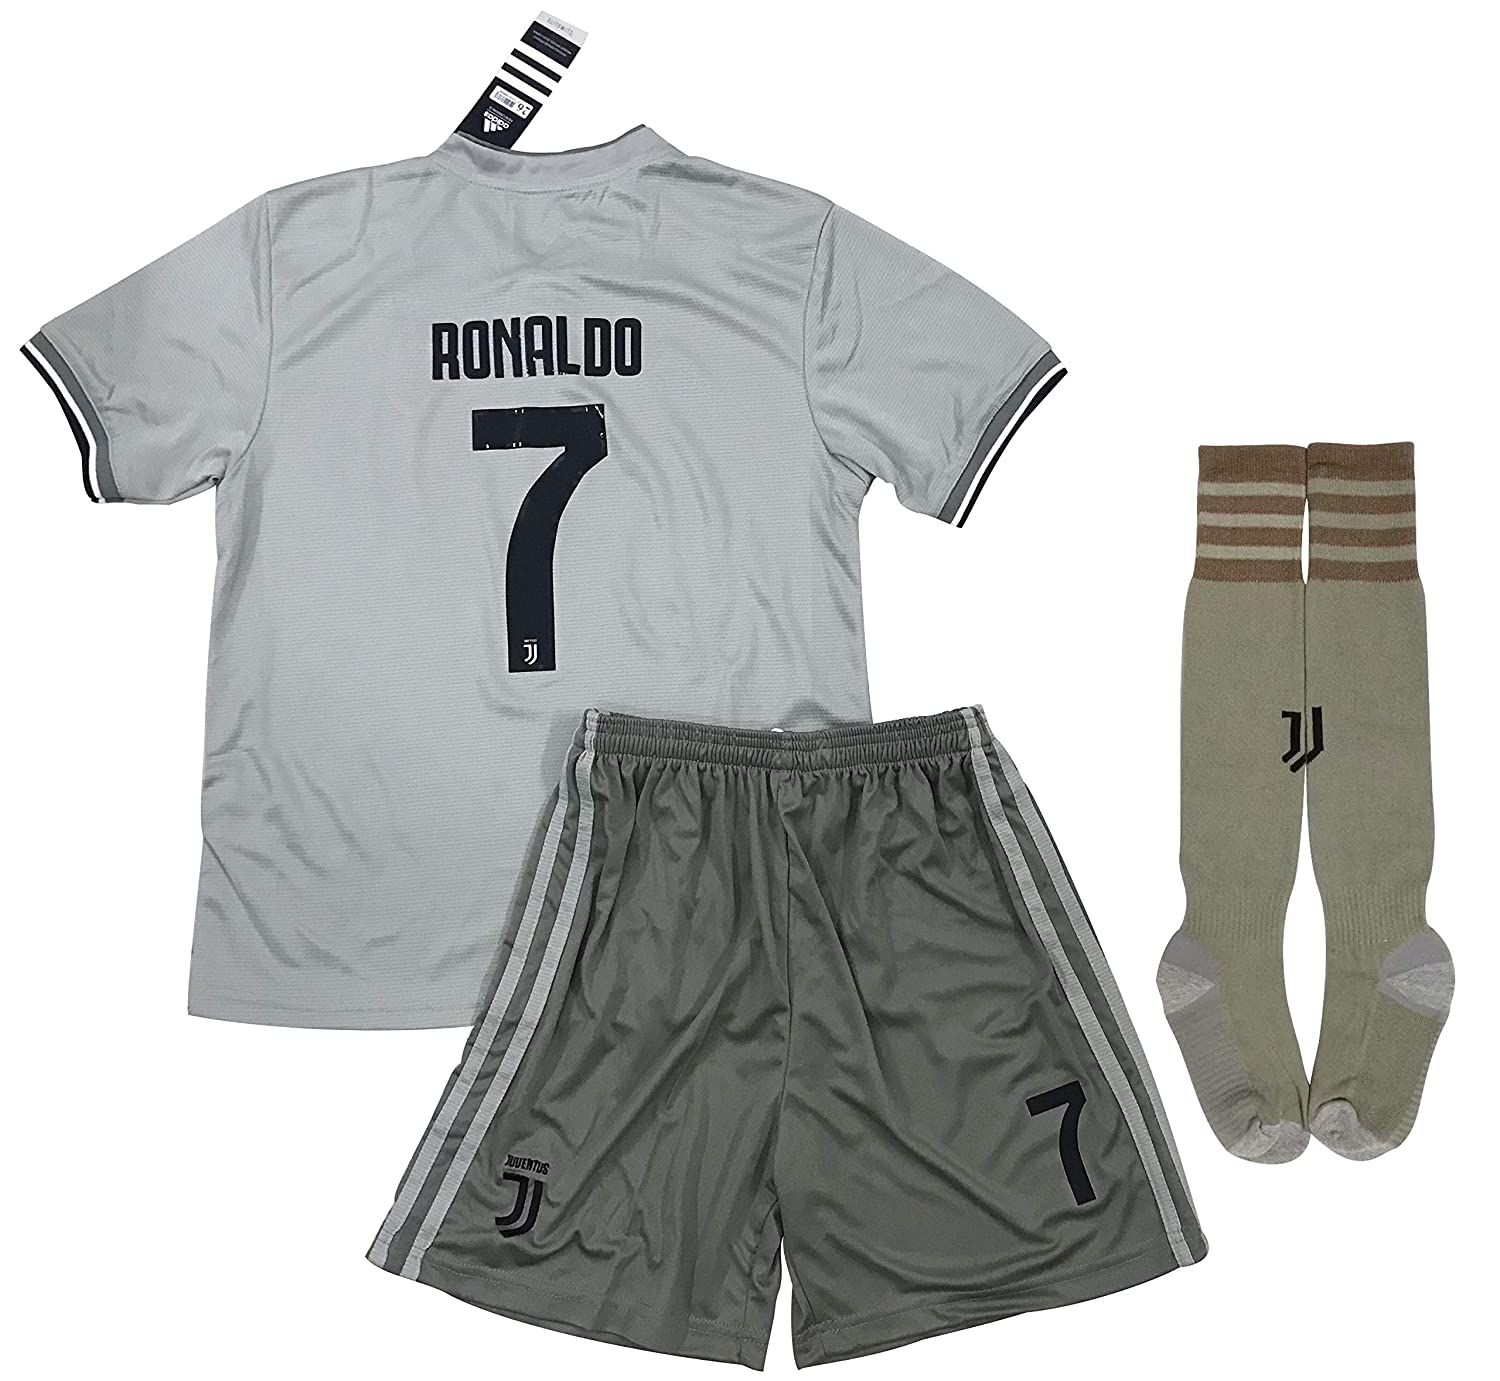 new products f66ac 77bd8 VVBSoccerStore New #7 Ronaldo 2018/2019 Juventus Away Jersey Shorts & Socks  for Kids/Youths